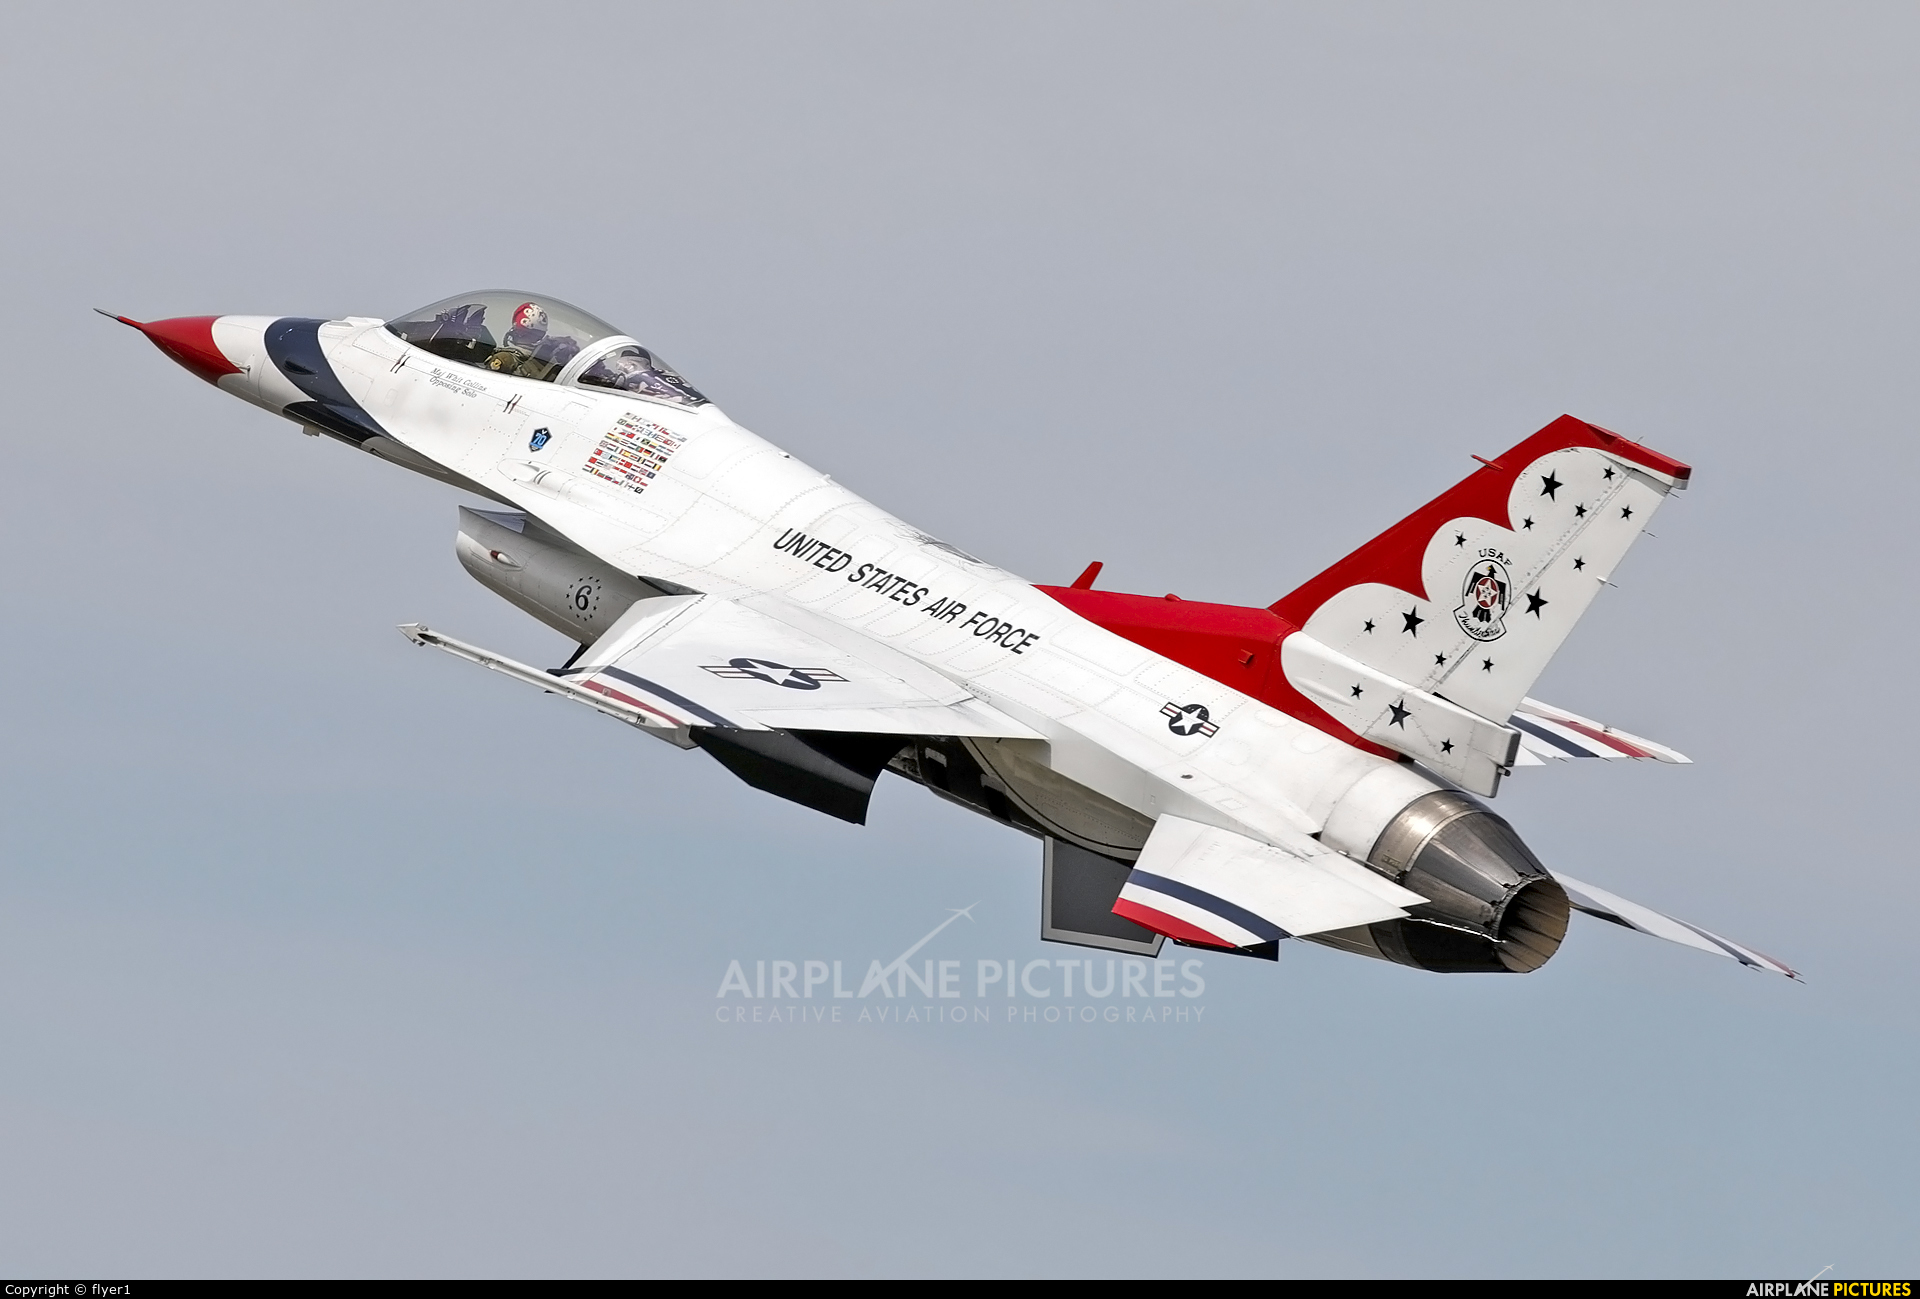 USA - Air Force : Thunderbirds 87-0303 aircraft at Fairford